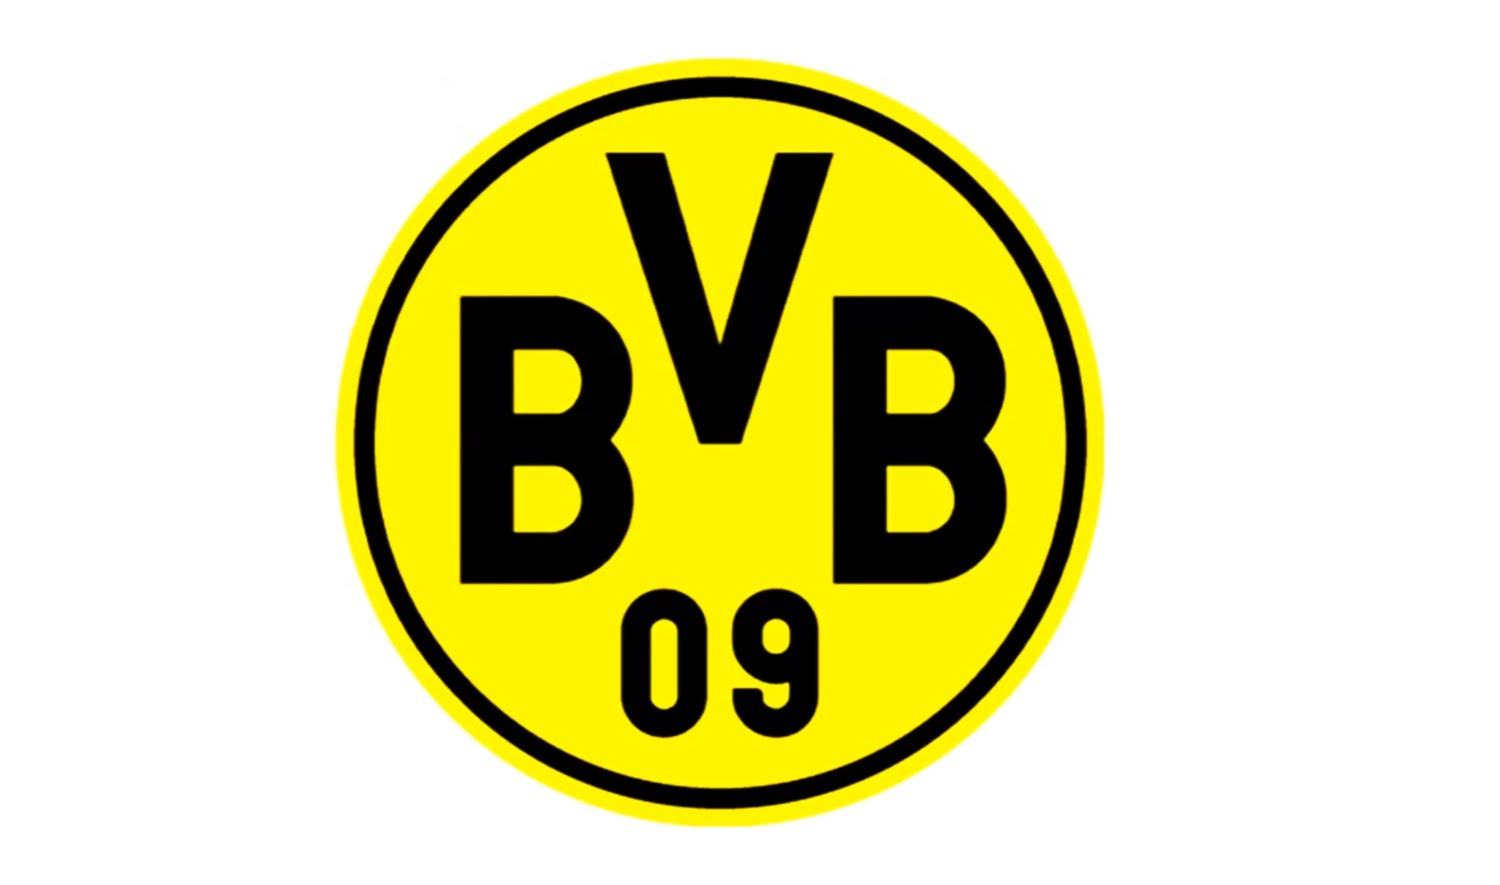 Borussia Dortmund Backgrounds, Compatible - PC, Mobile, Gadgets| 1500x885 px